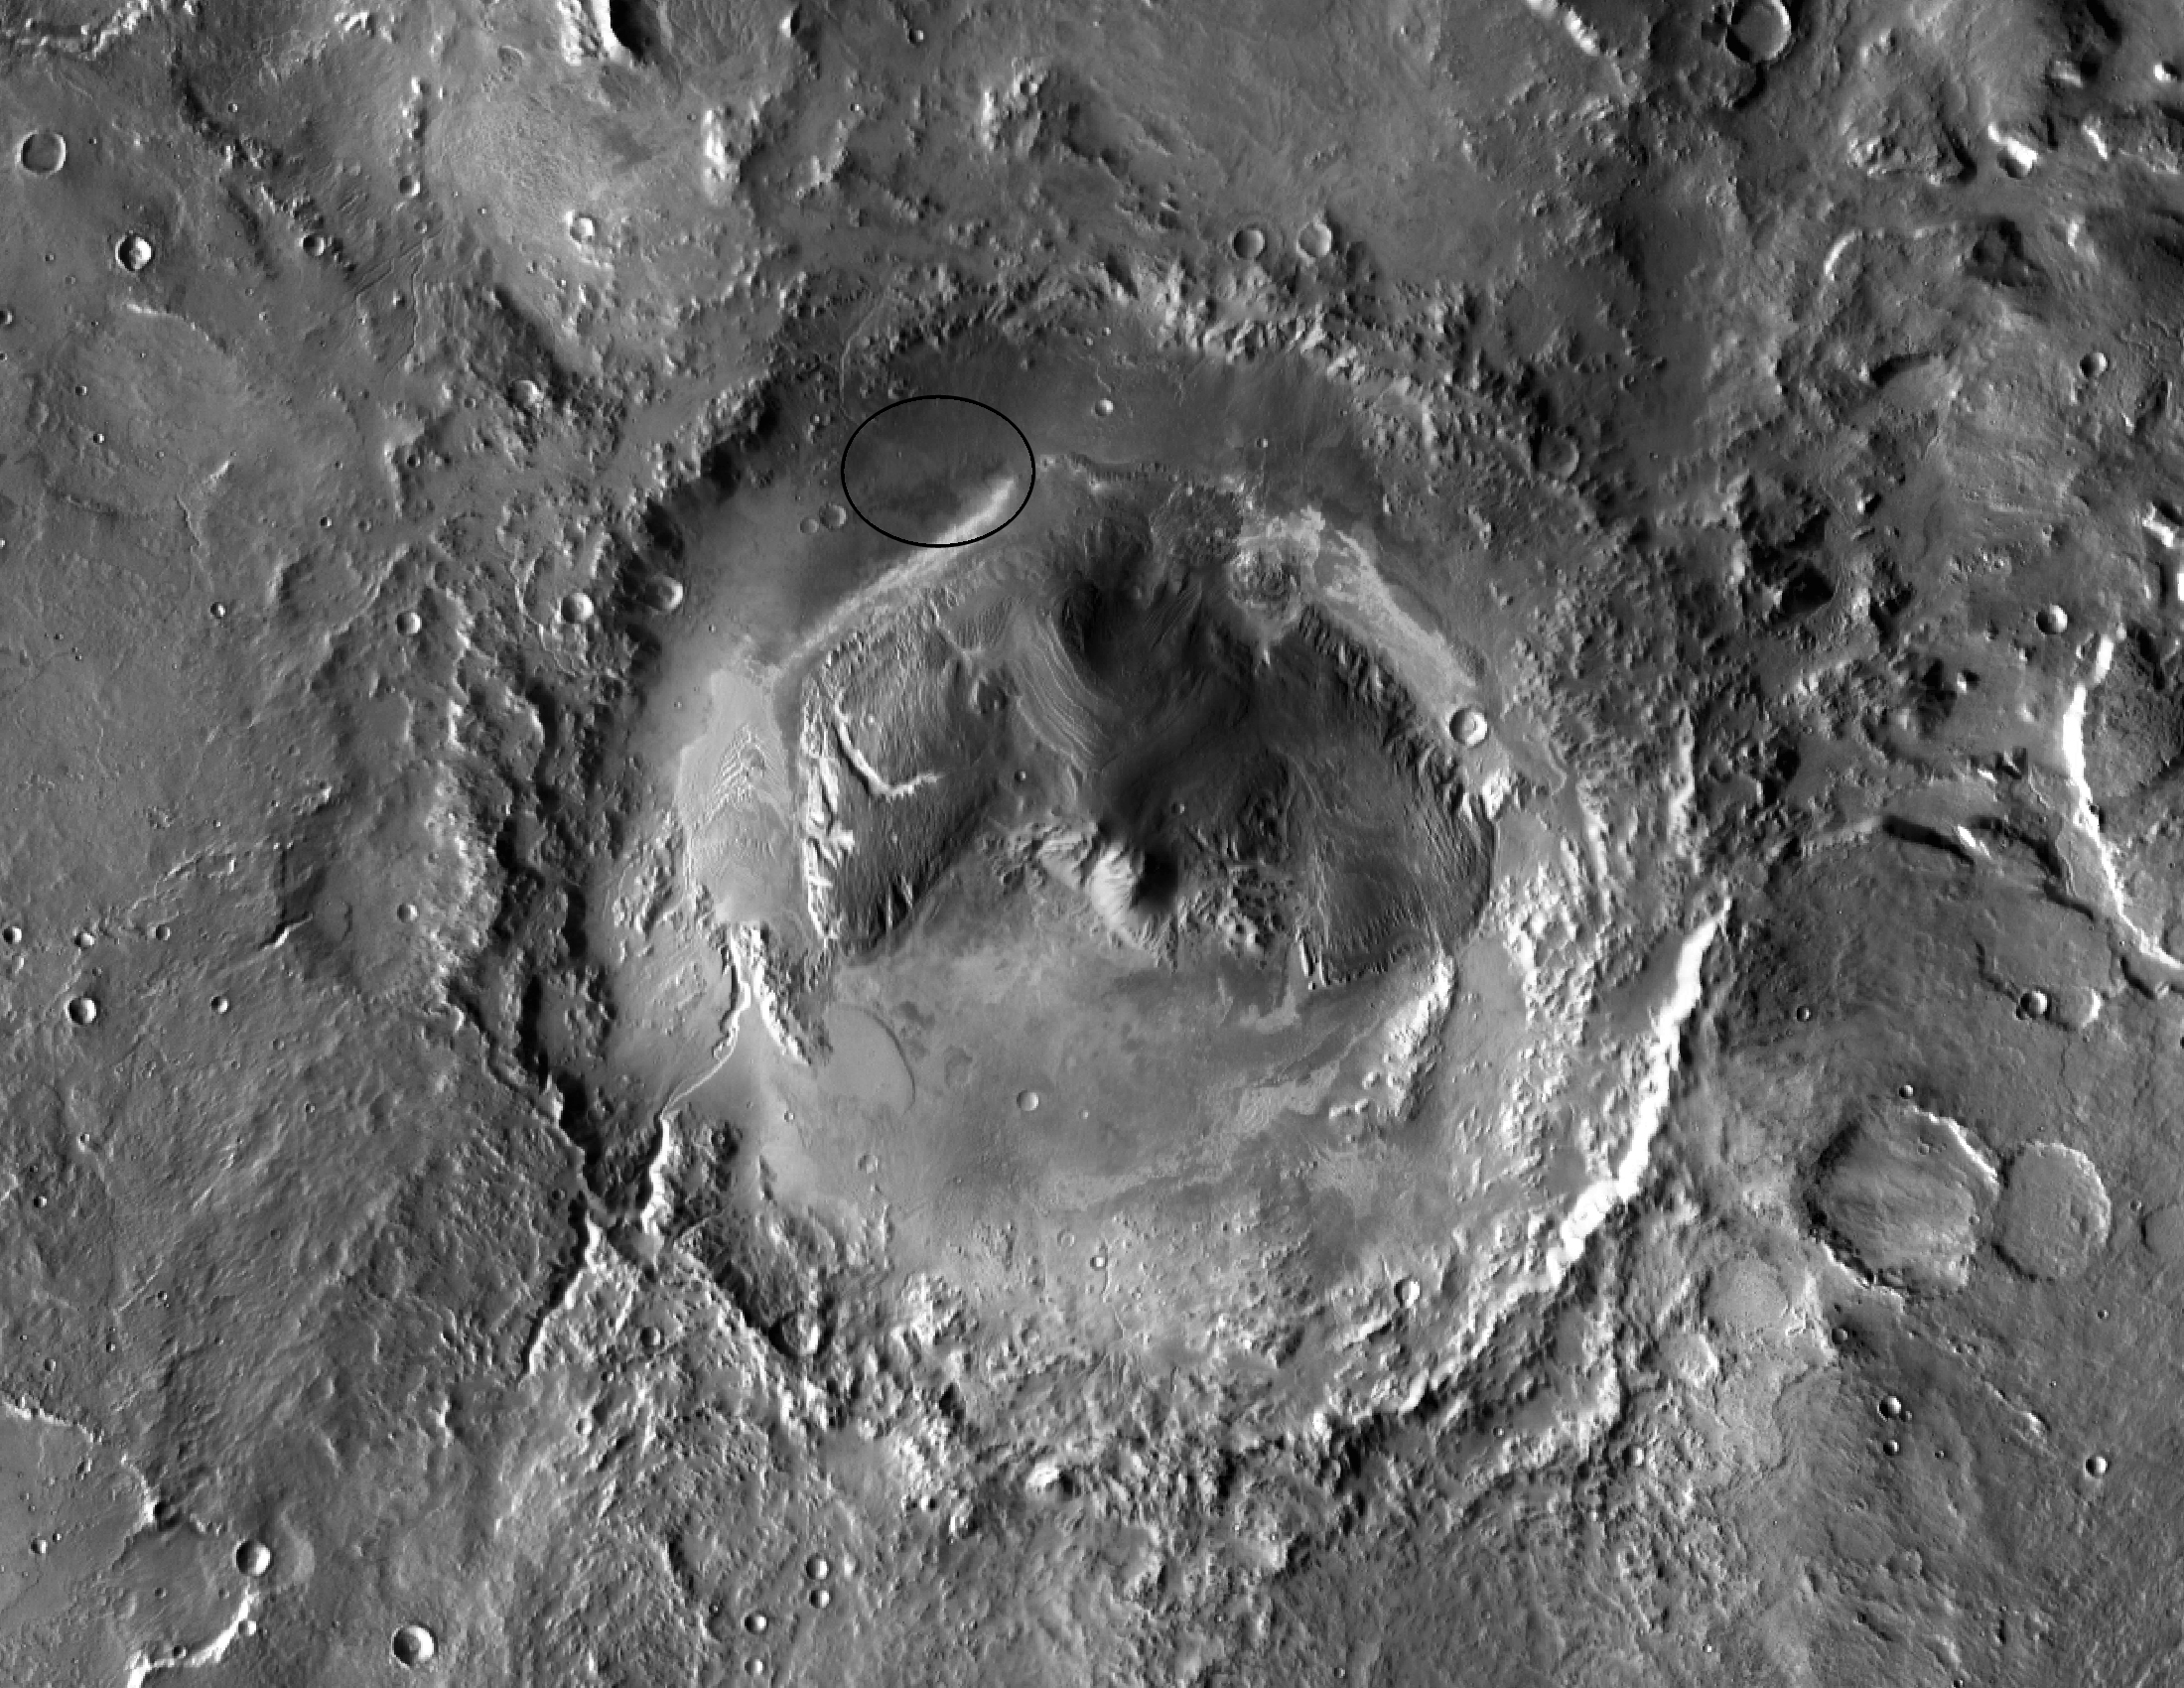 A Promising Spot for Life on Mars